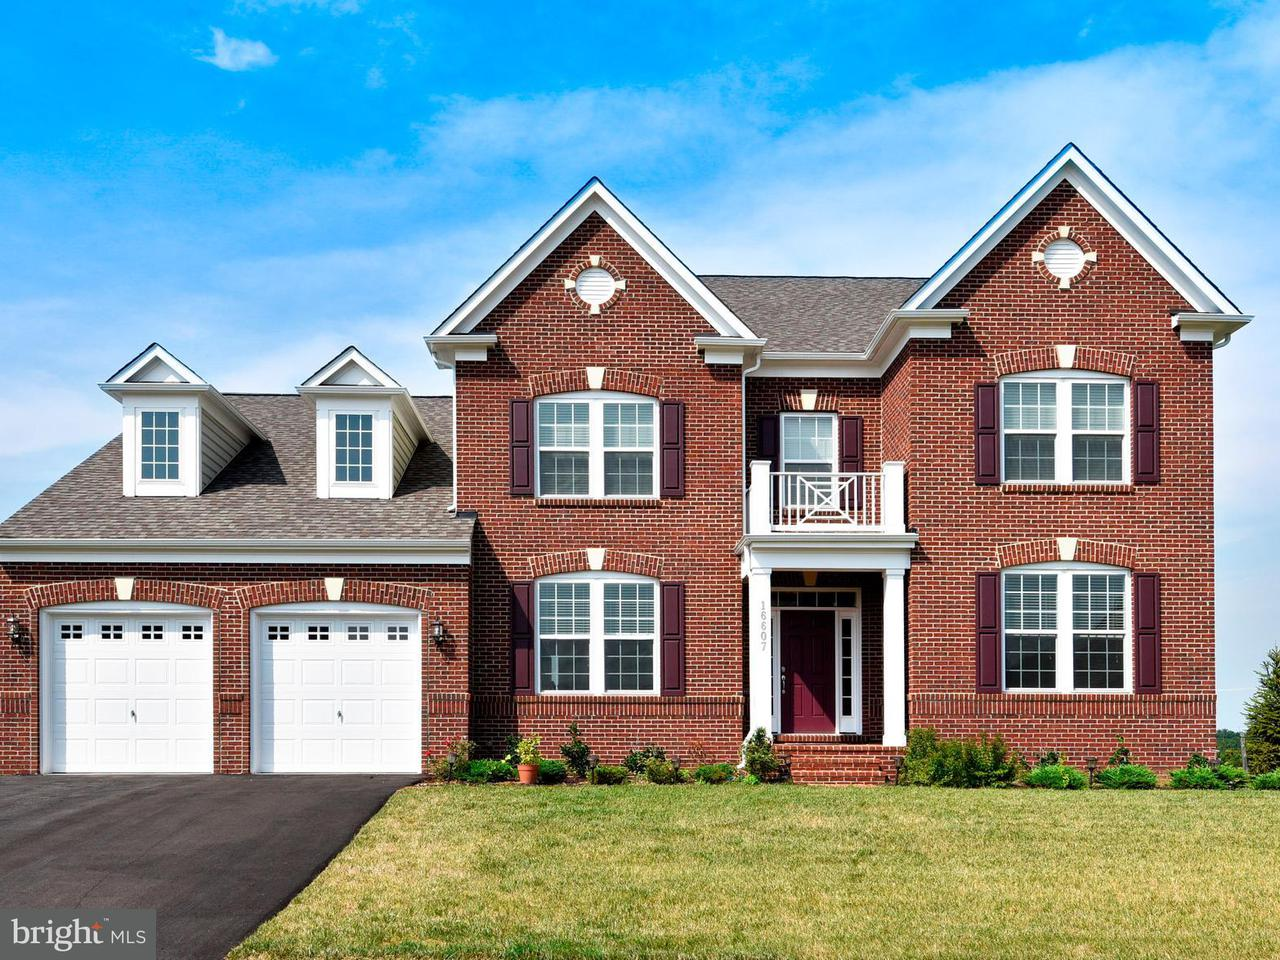 Single Family Home for Sale at 16607 HEARTWOOD Drive 16607 HEARTWOOD Drive Rockville, Maryland 20855 United States